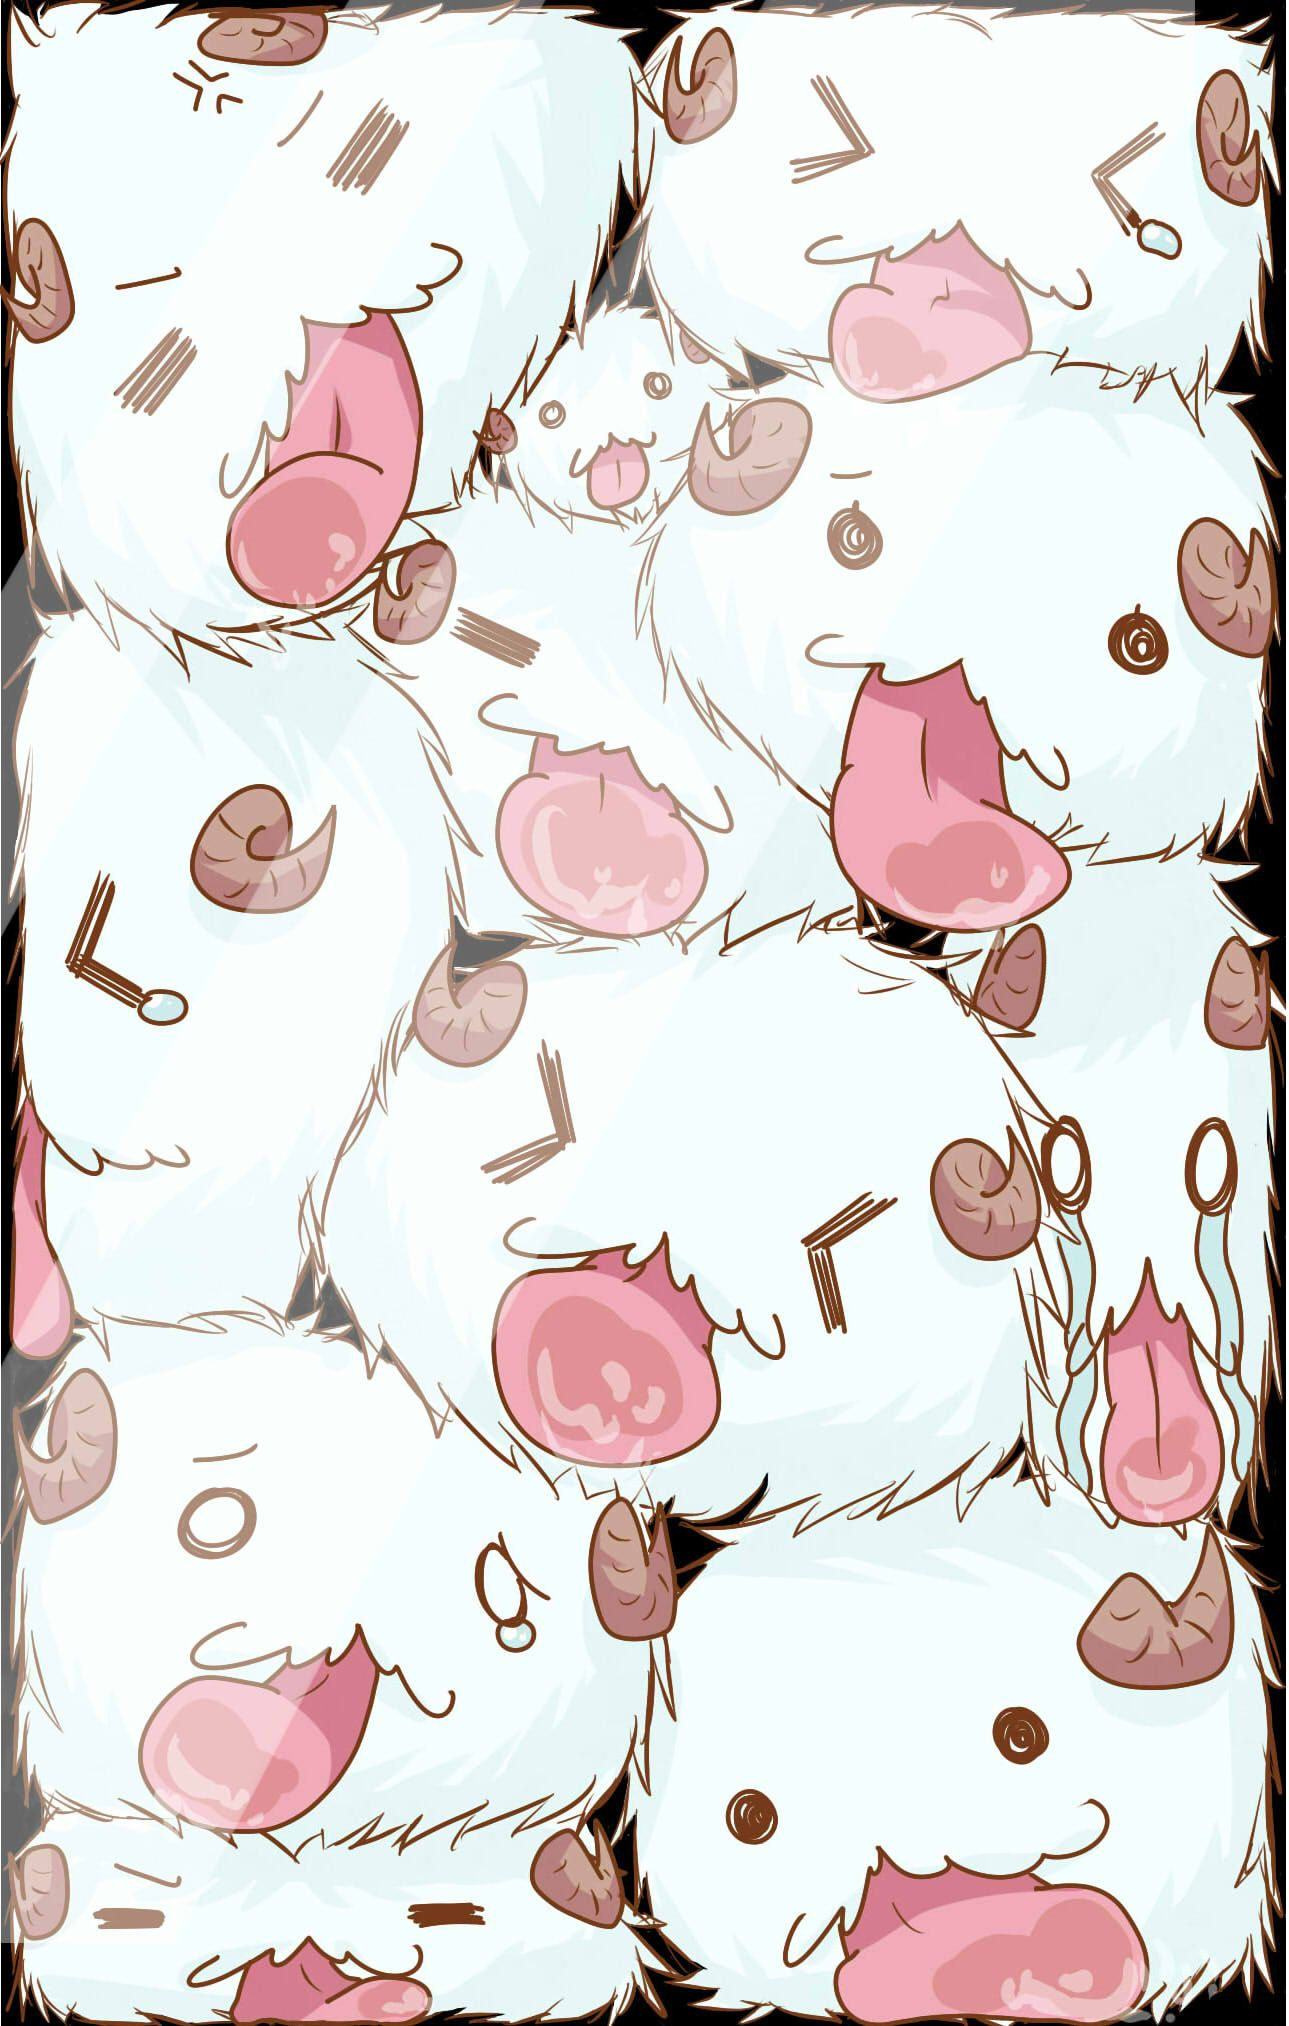 Poros! I love these little guys~ they are toooo cute and adorable ❤️ honestly I want one to be with me everyday lol